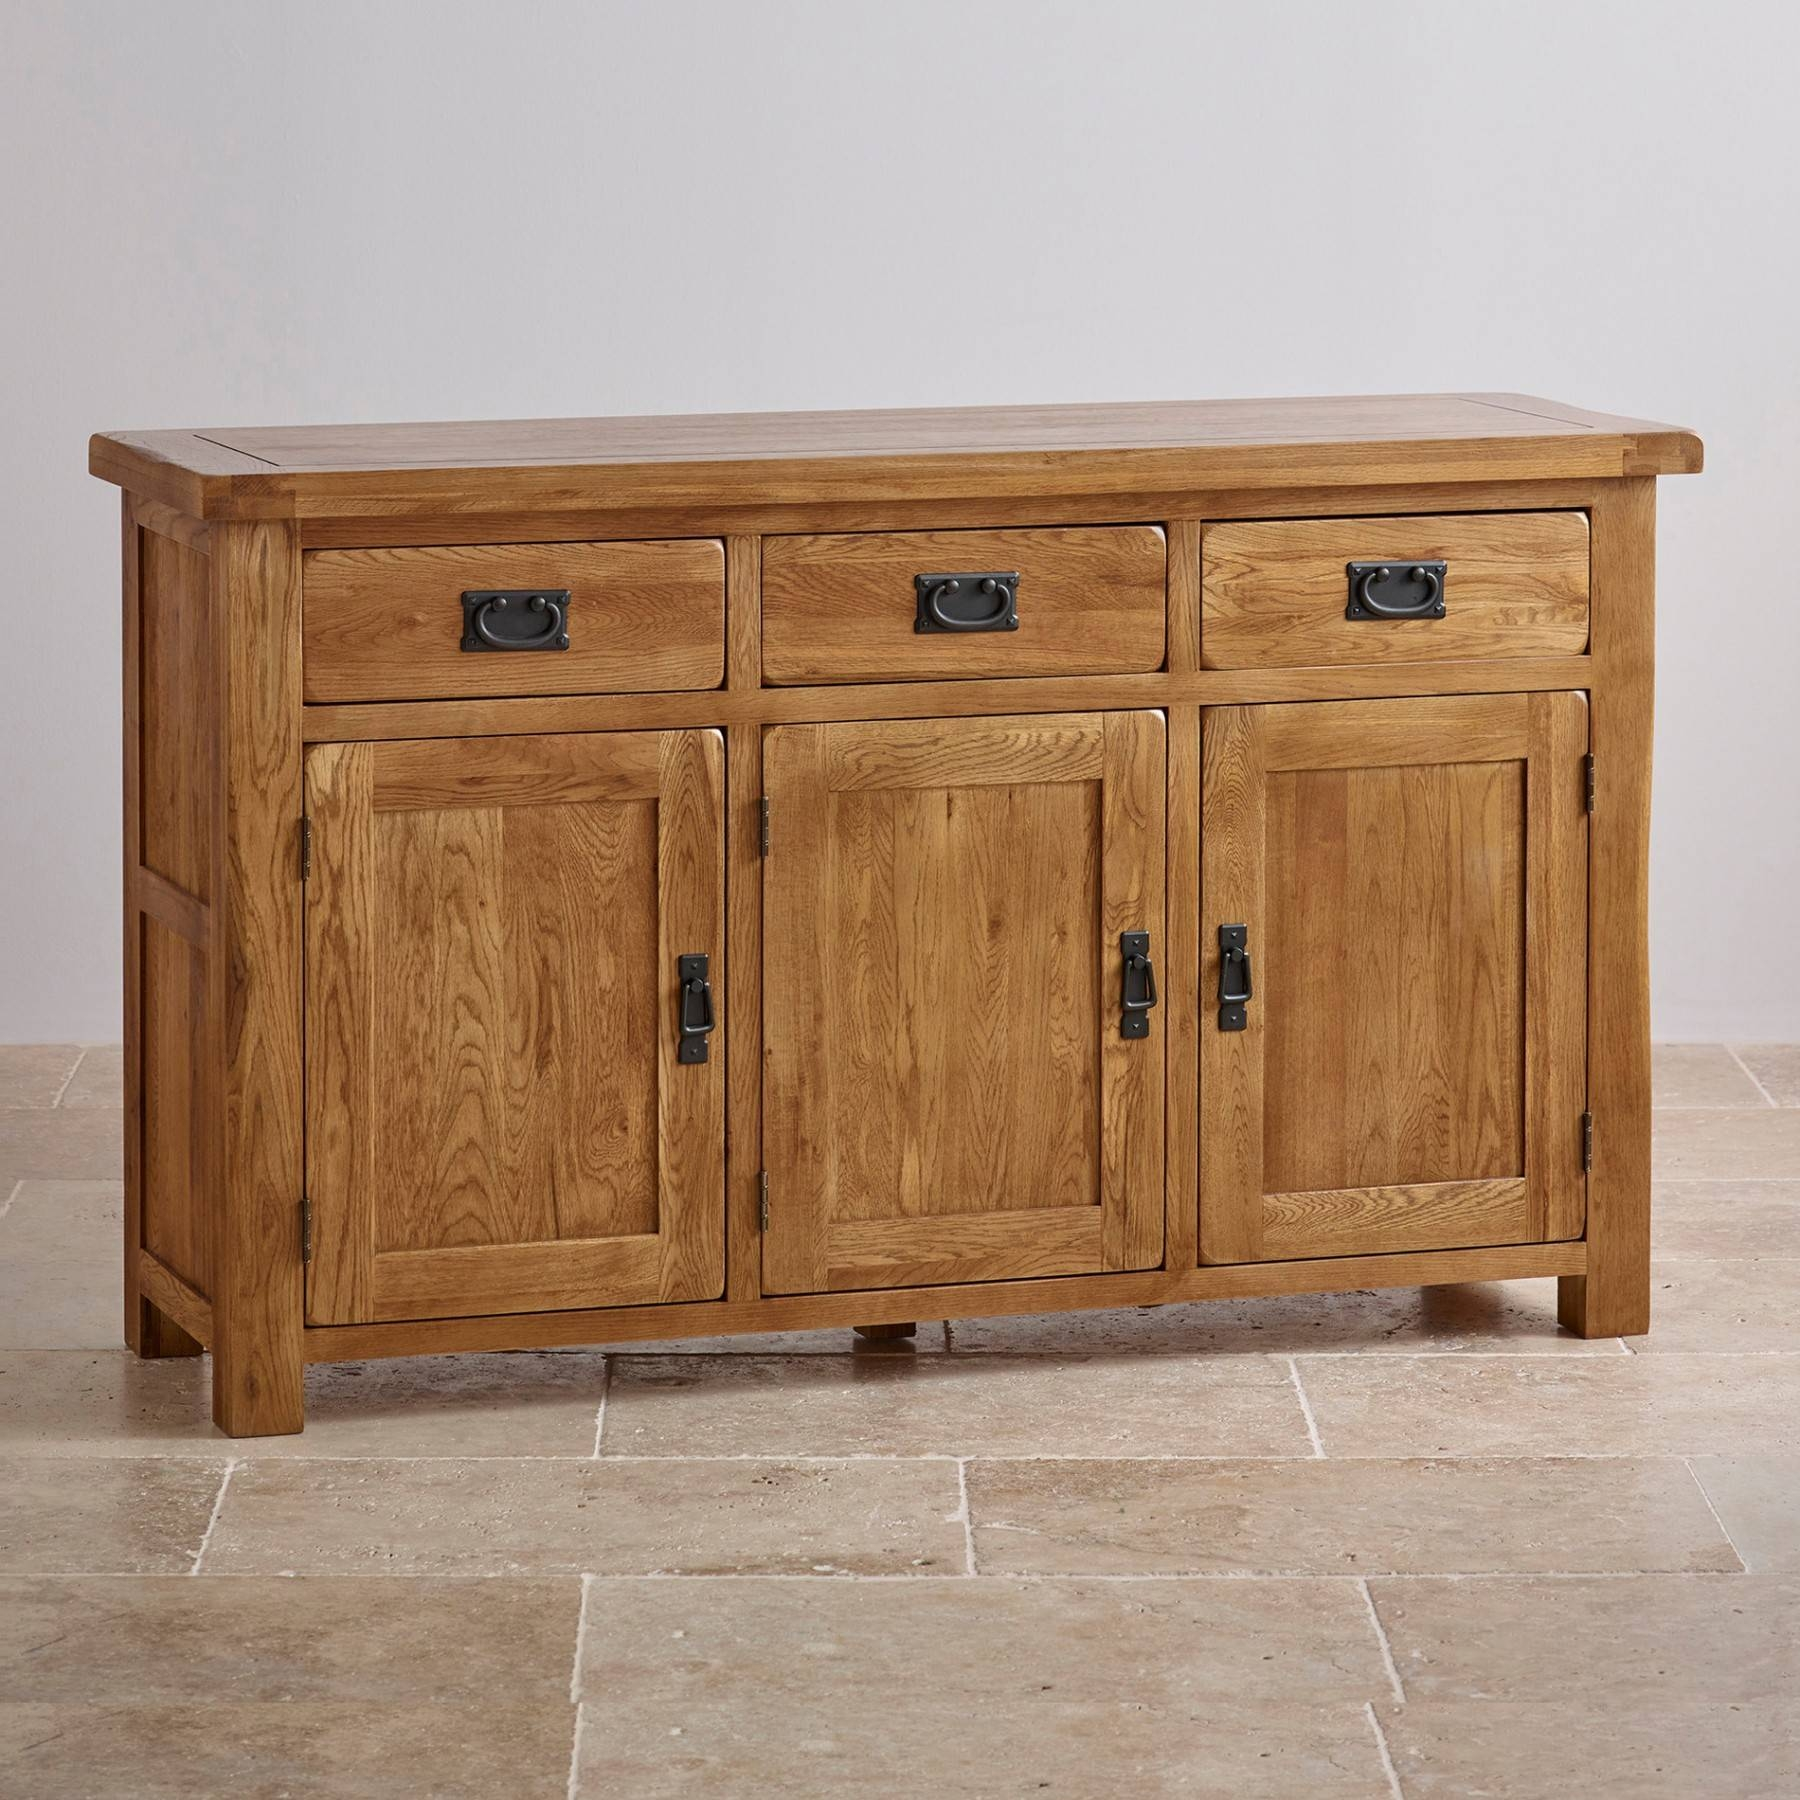 Sideboards | Oak, Mango And Painted | Oak Furniture Land Throughout Most Current Oak Furniture Land Sideboards (#15 of 15)